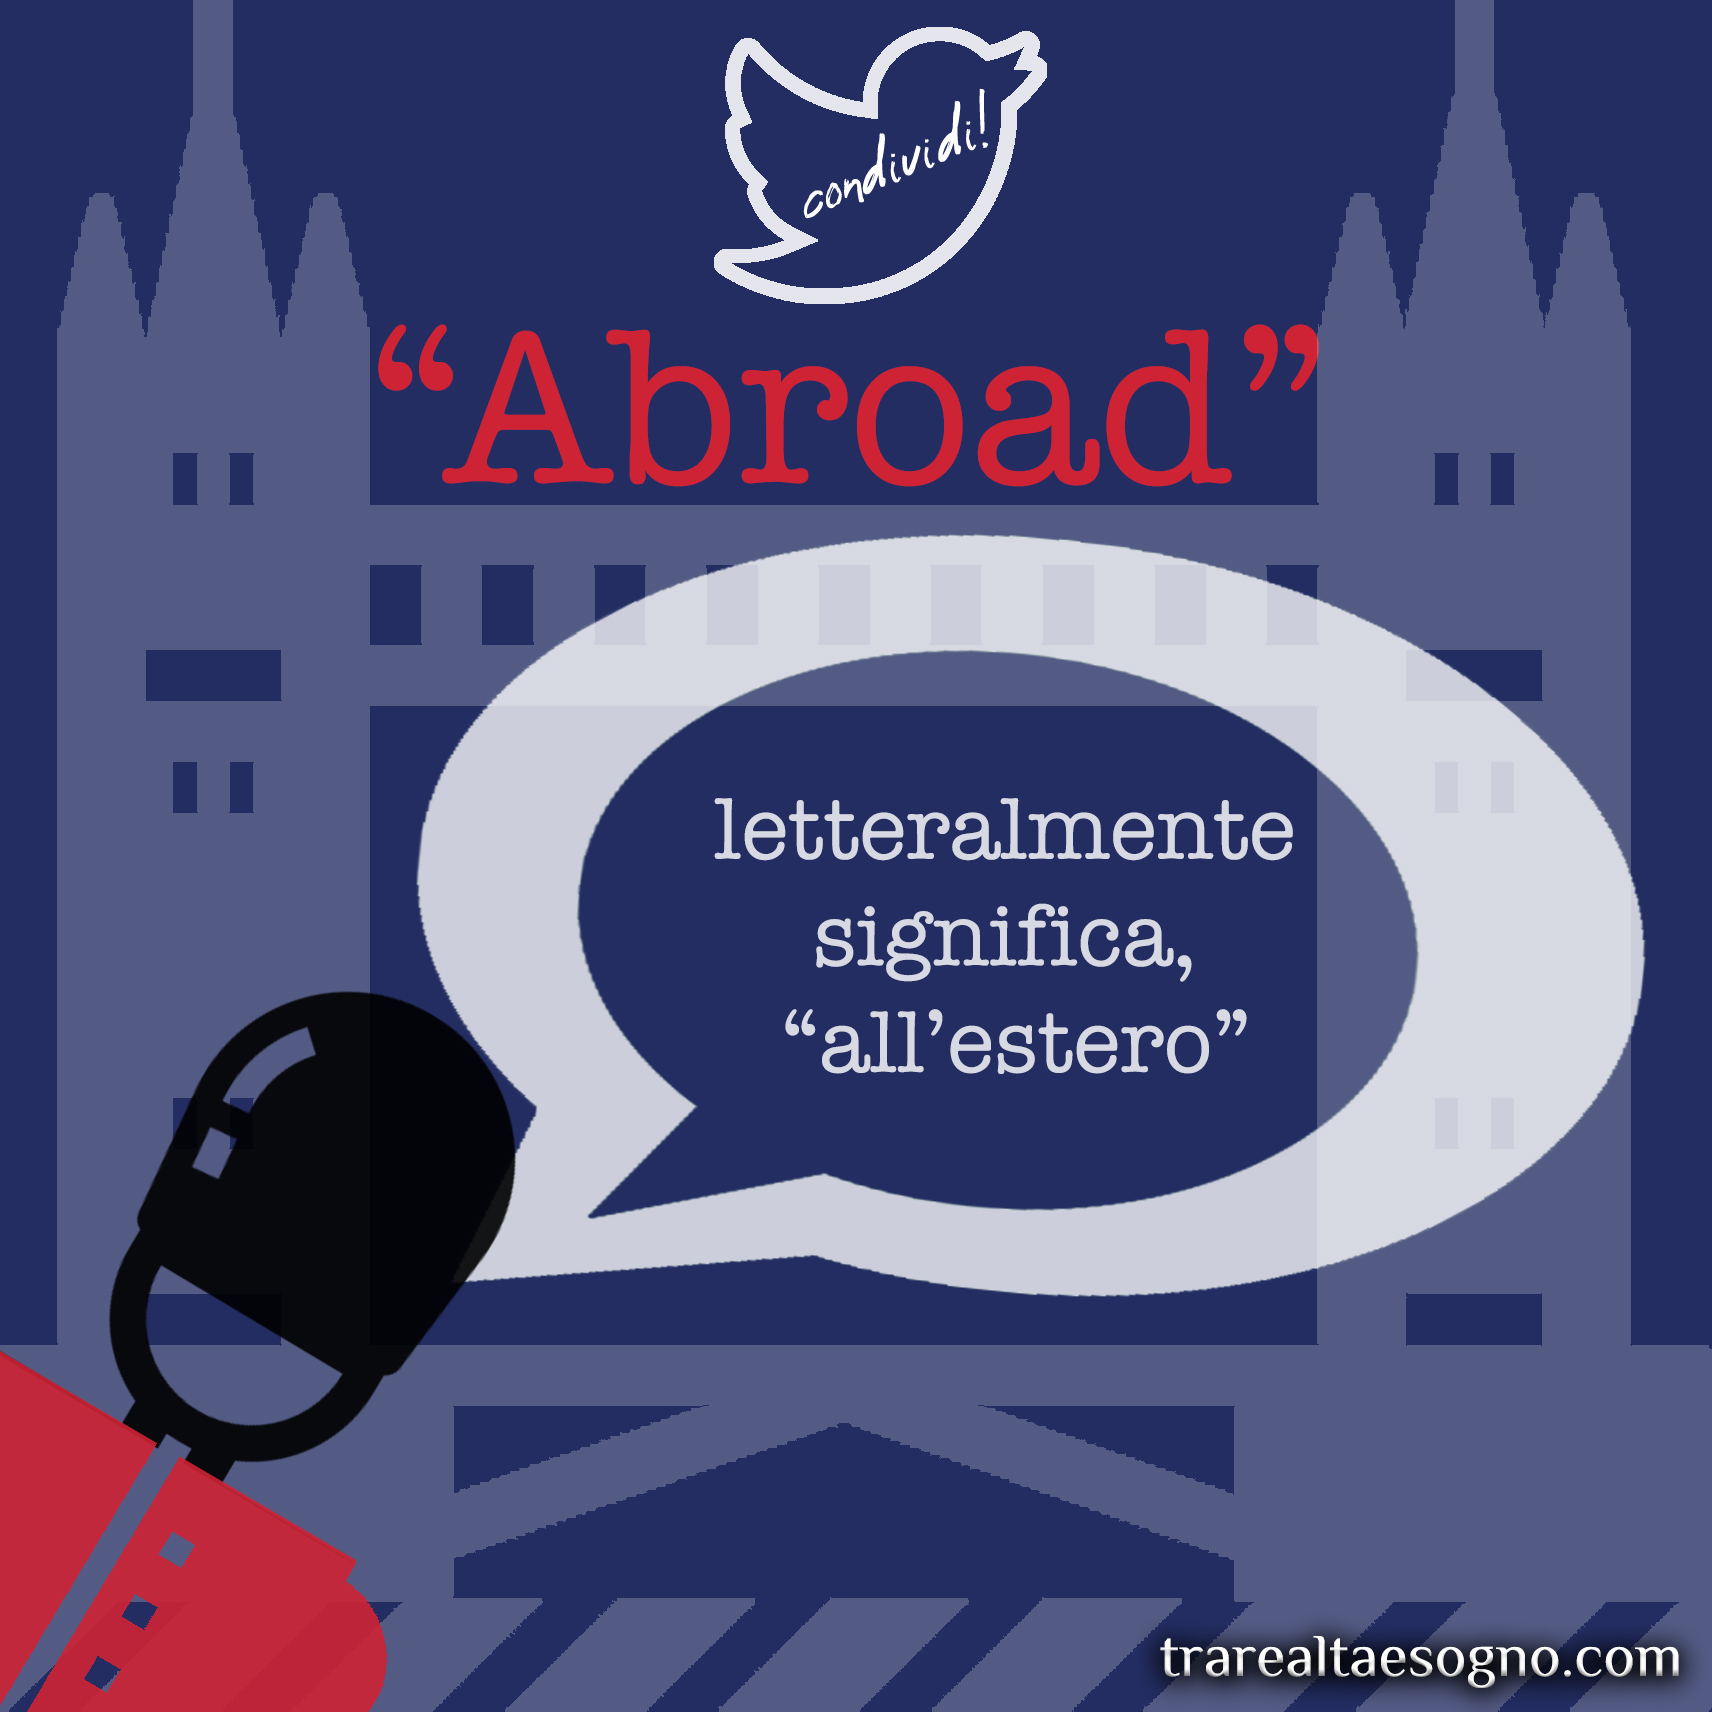 1abroad